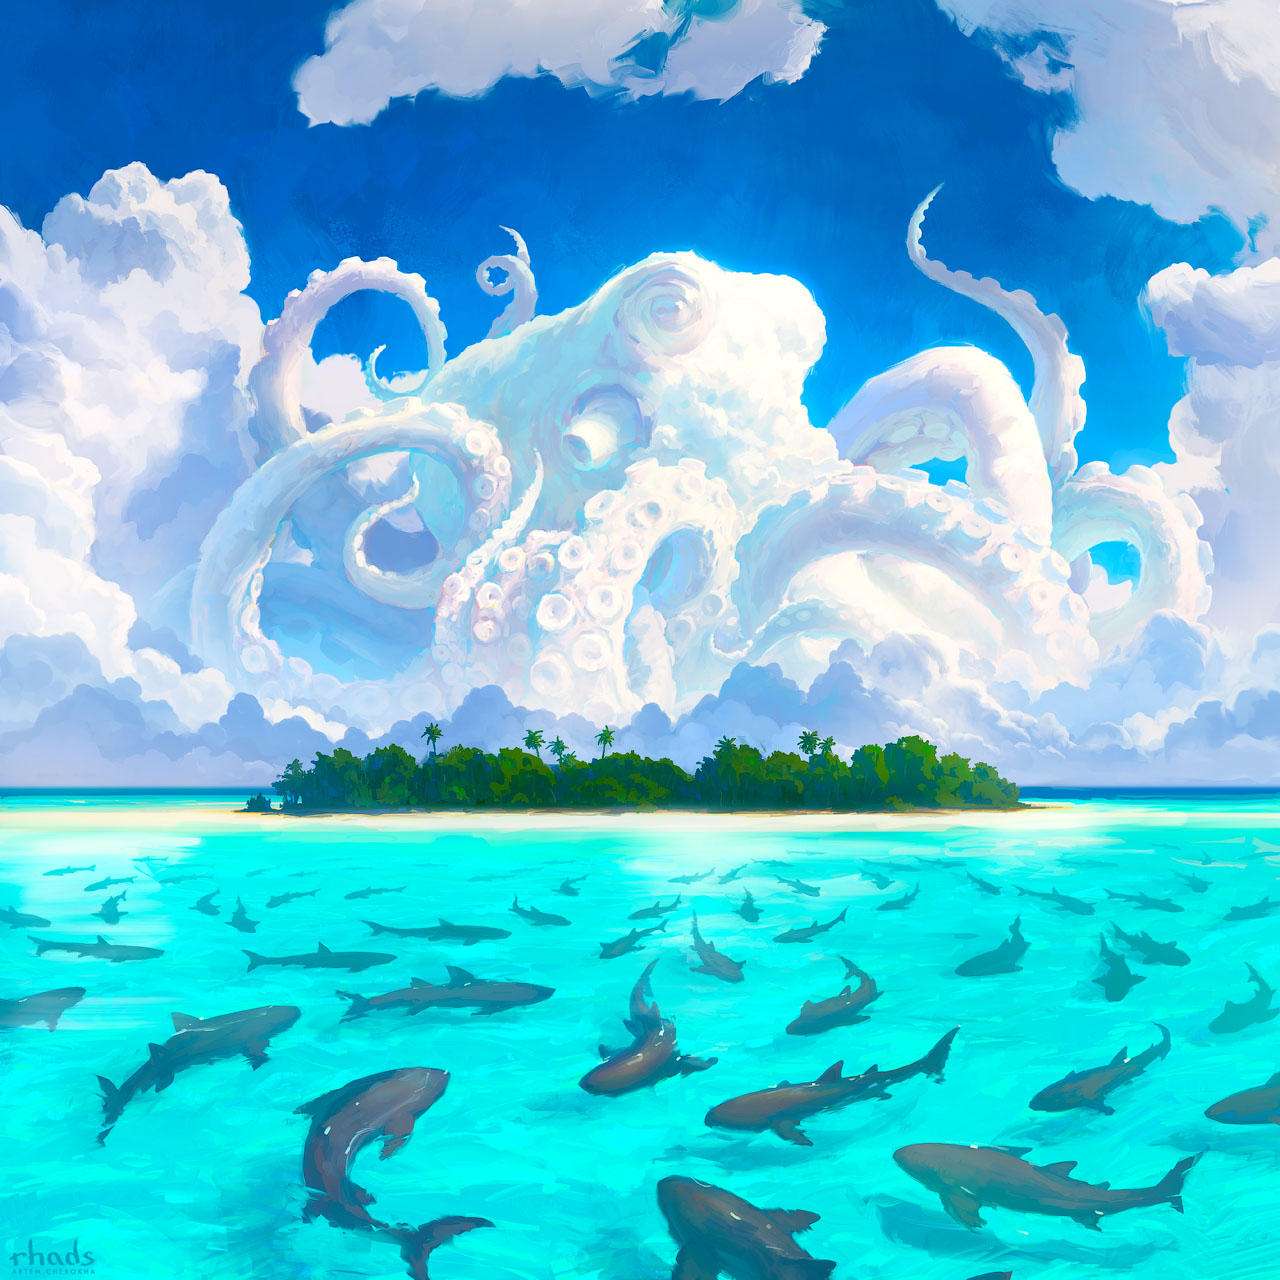 Dangerous Waters by RHADS